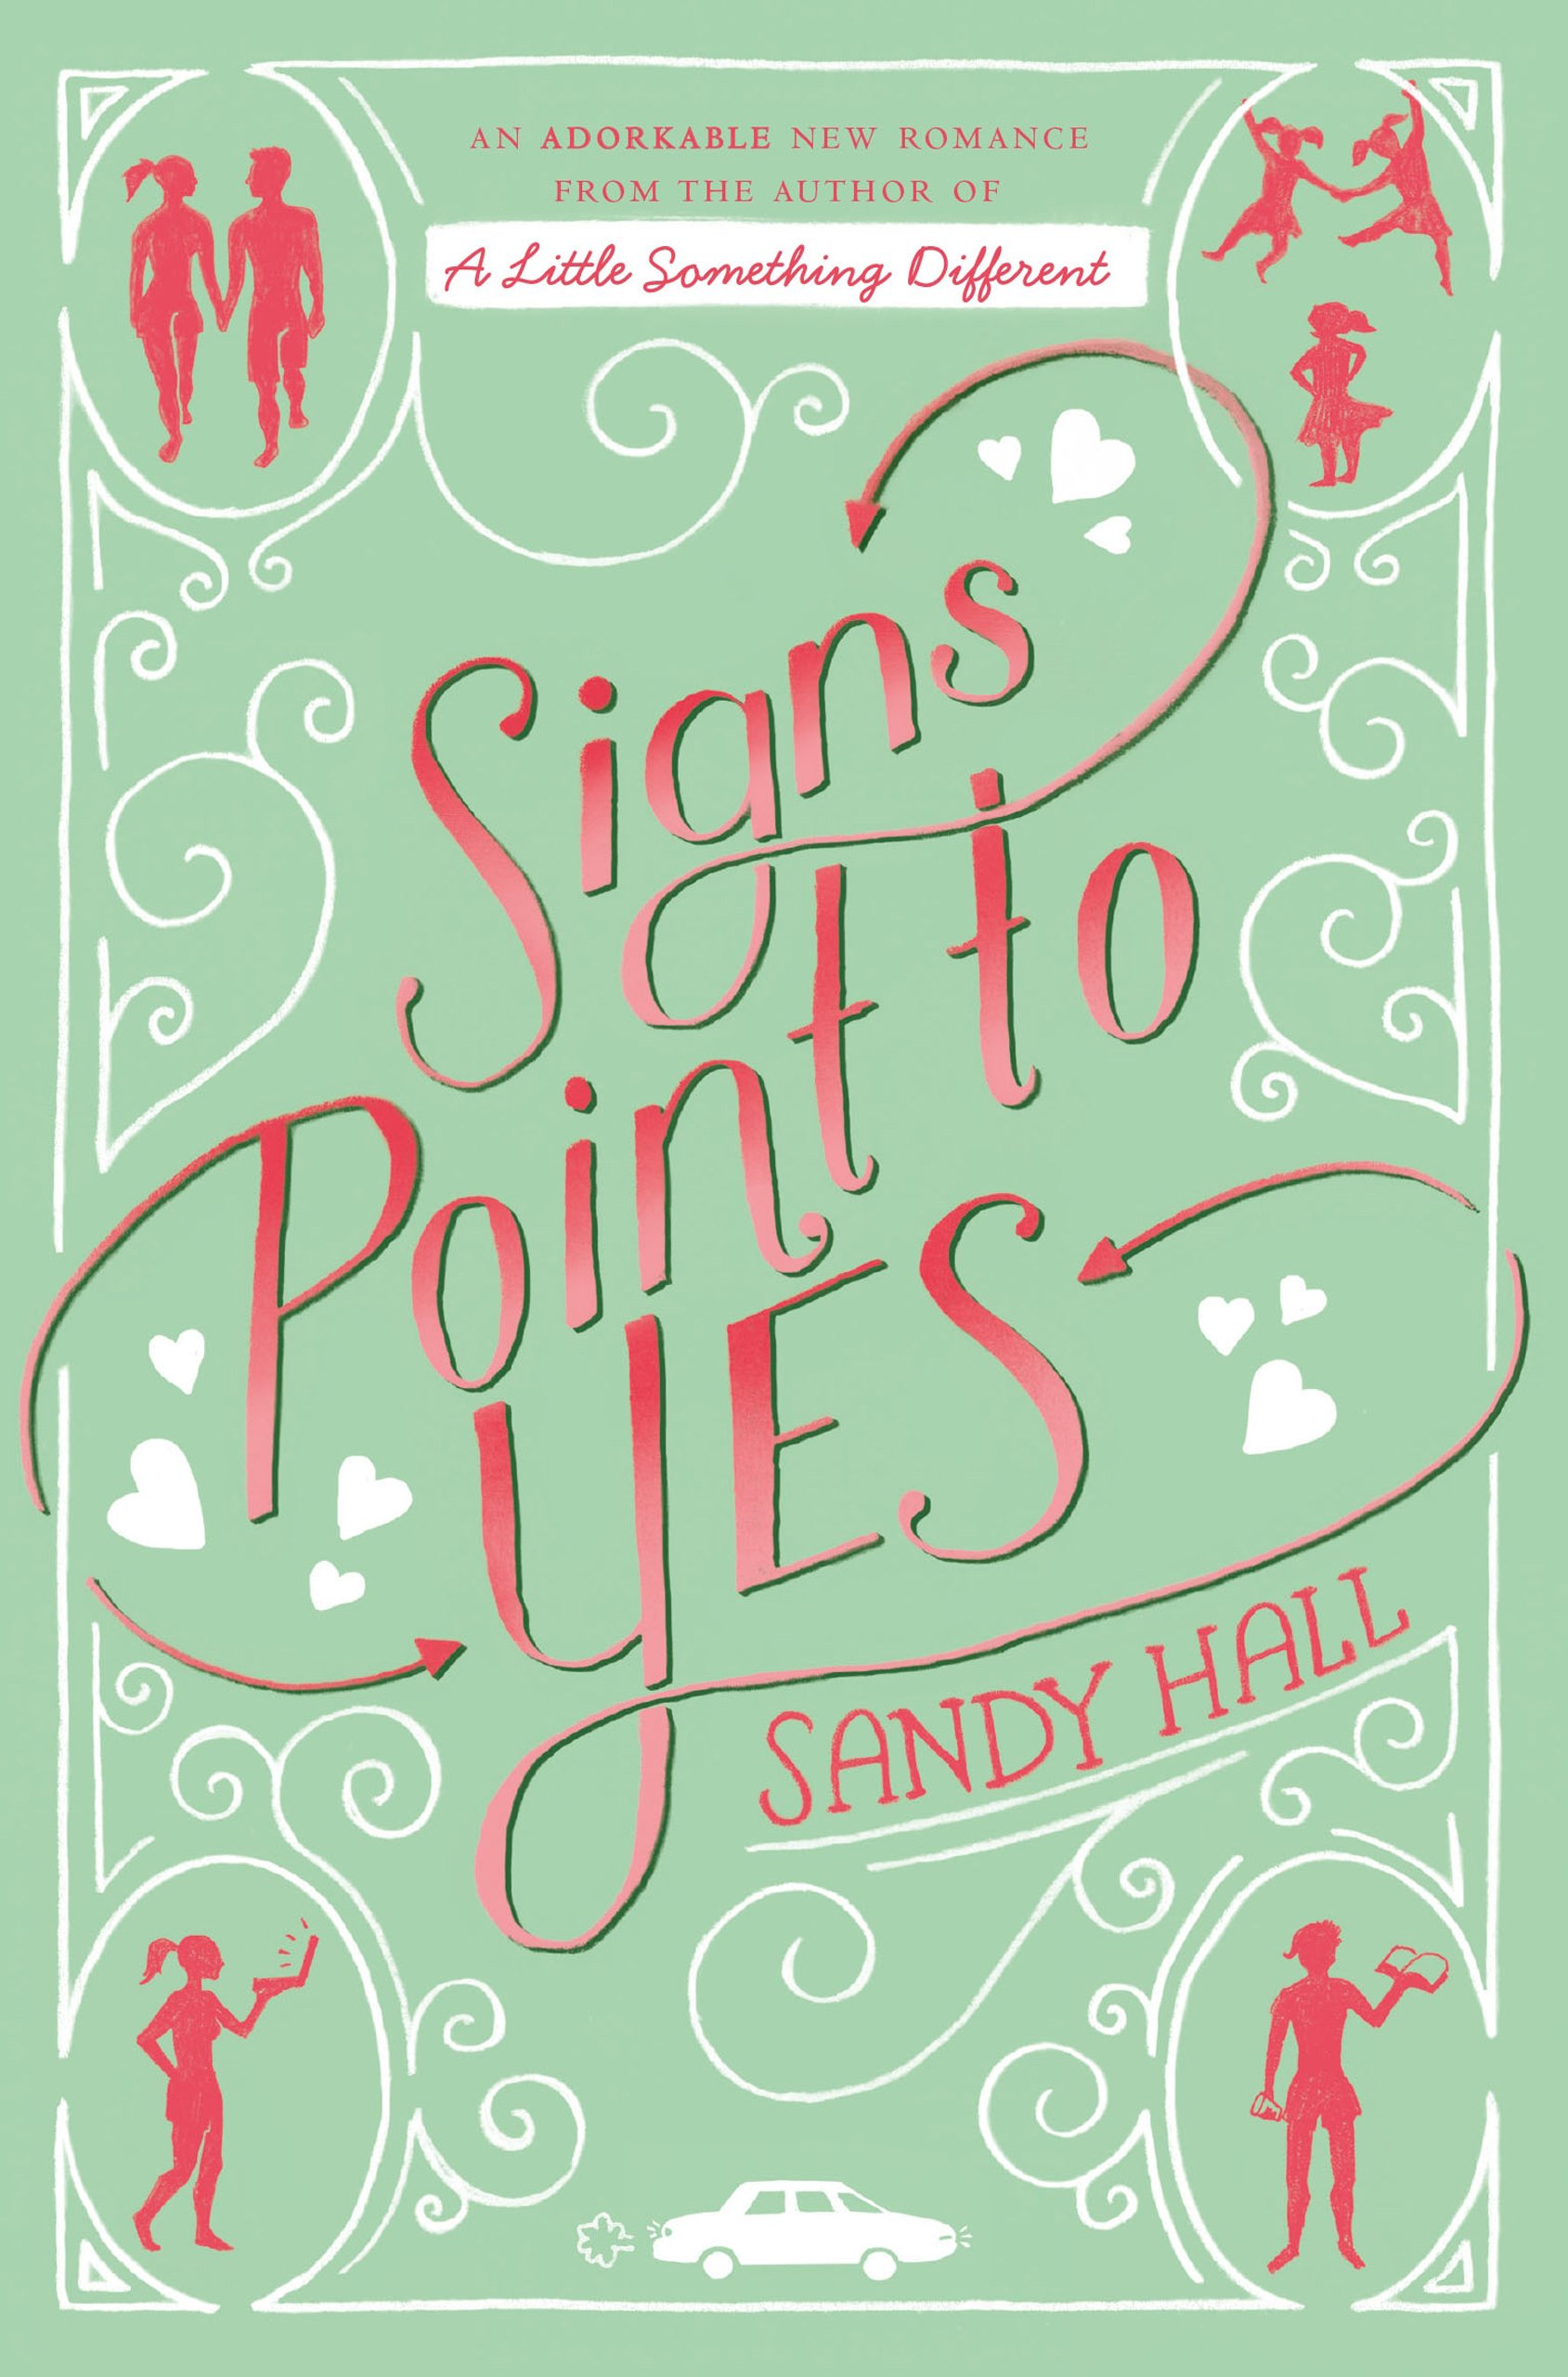 Signs Point to Yes: A Swoon Novel (Swoon Novels Book 7) (English Edition)